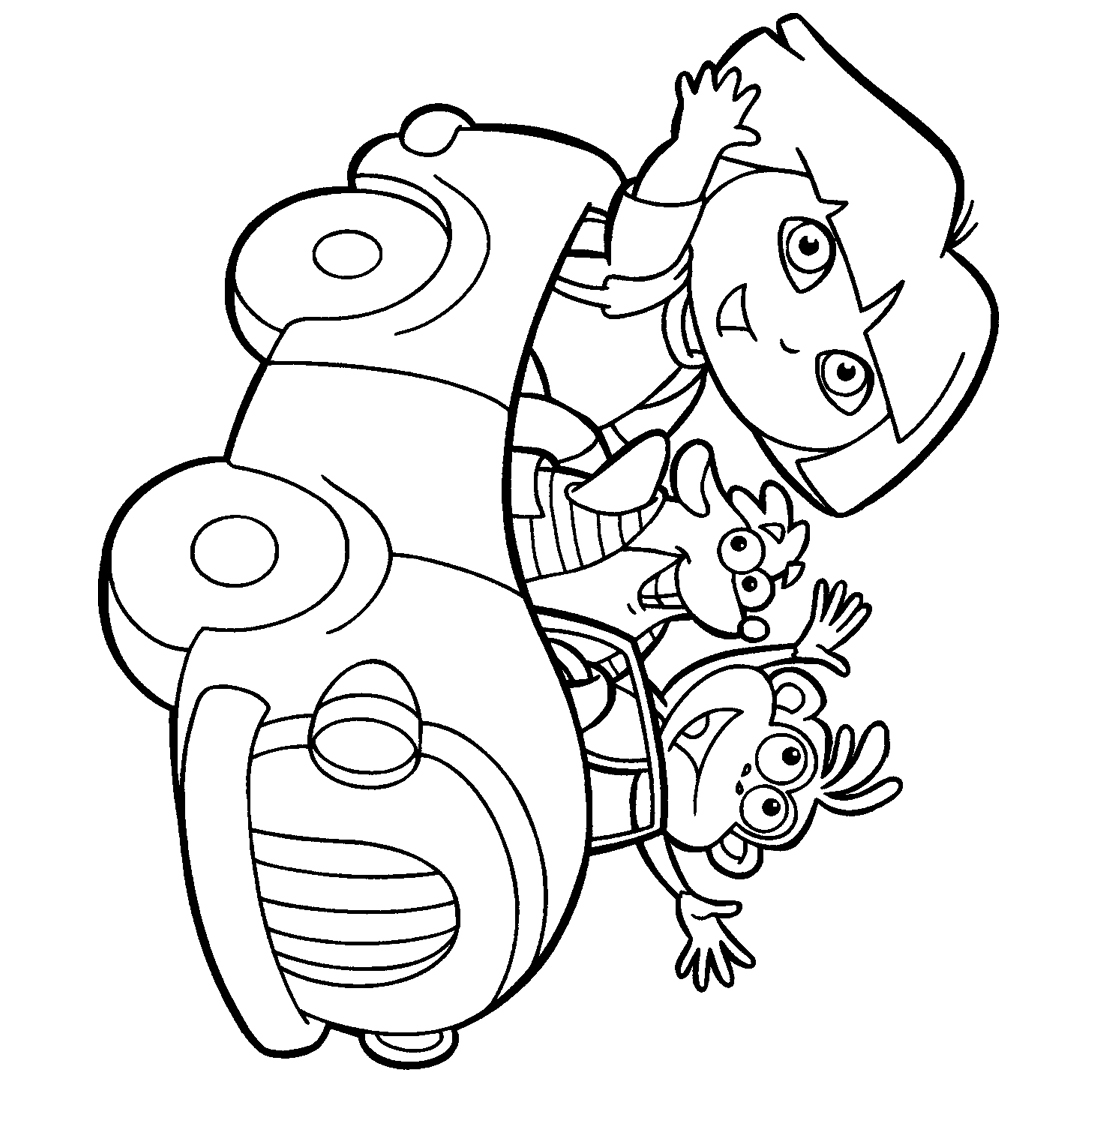 dora coloring dora colouring pictures 2 coloring pages to print coloring dora